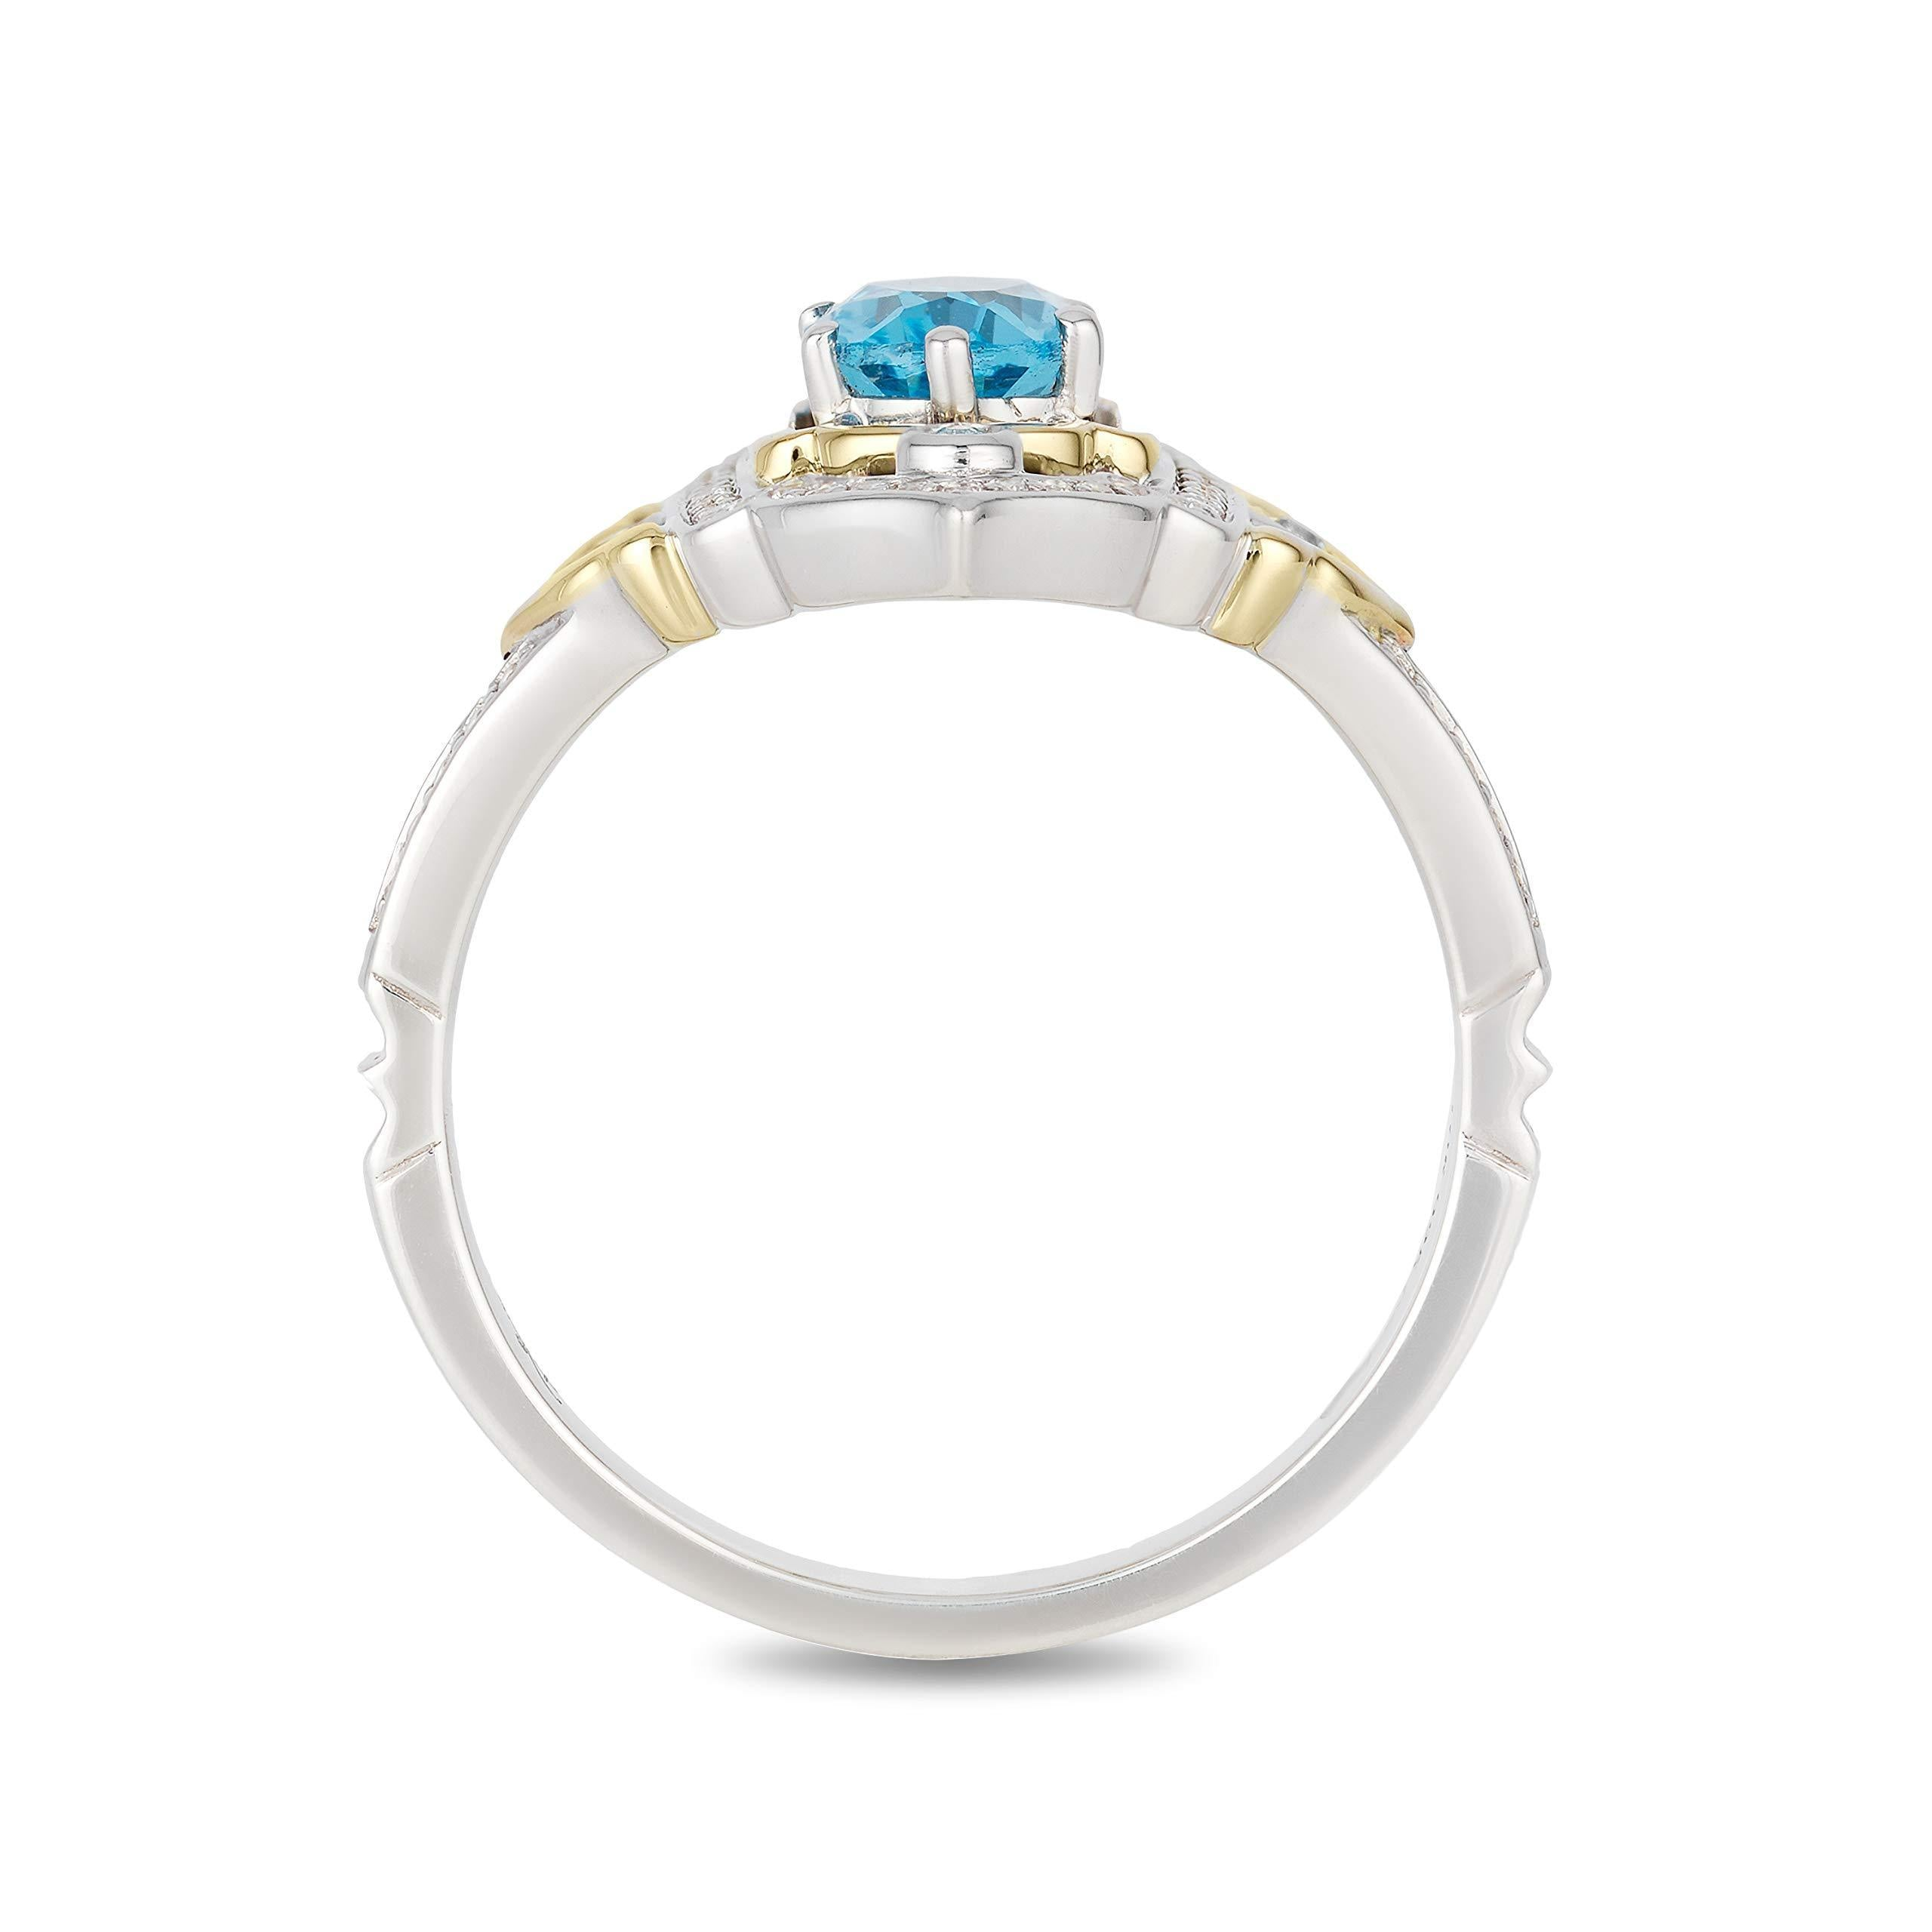 enchanted_disney-jasmine_ring-9k_yellow_gold_and_sterling_silver_0.20CTTW_3